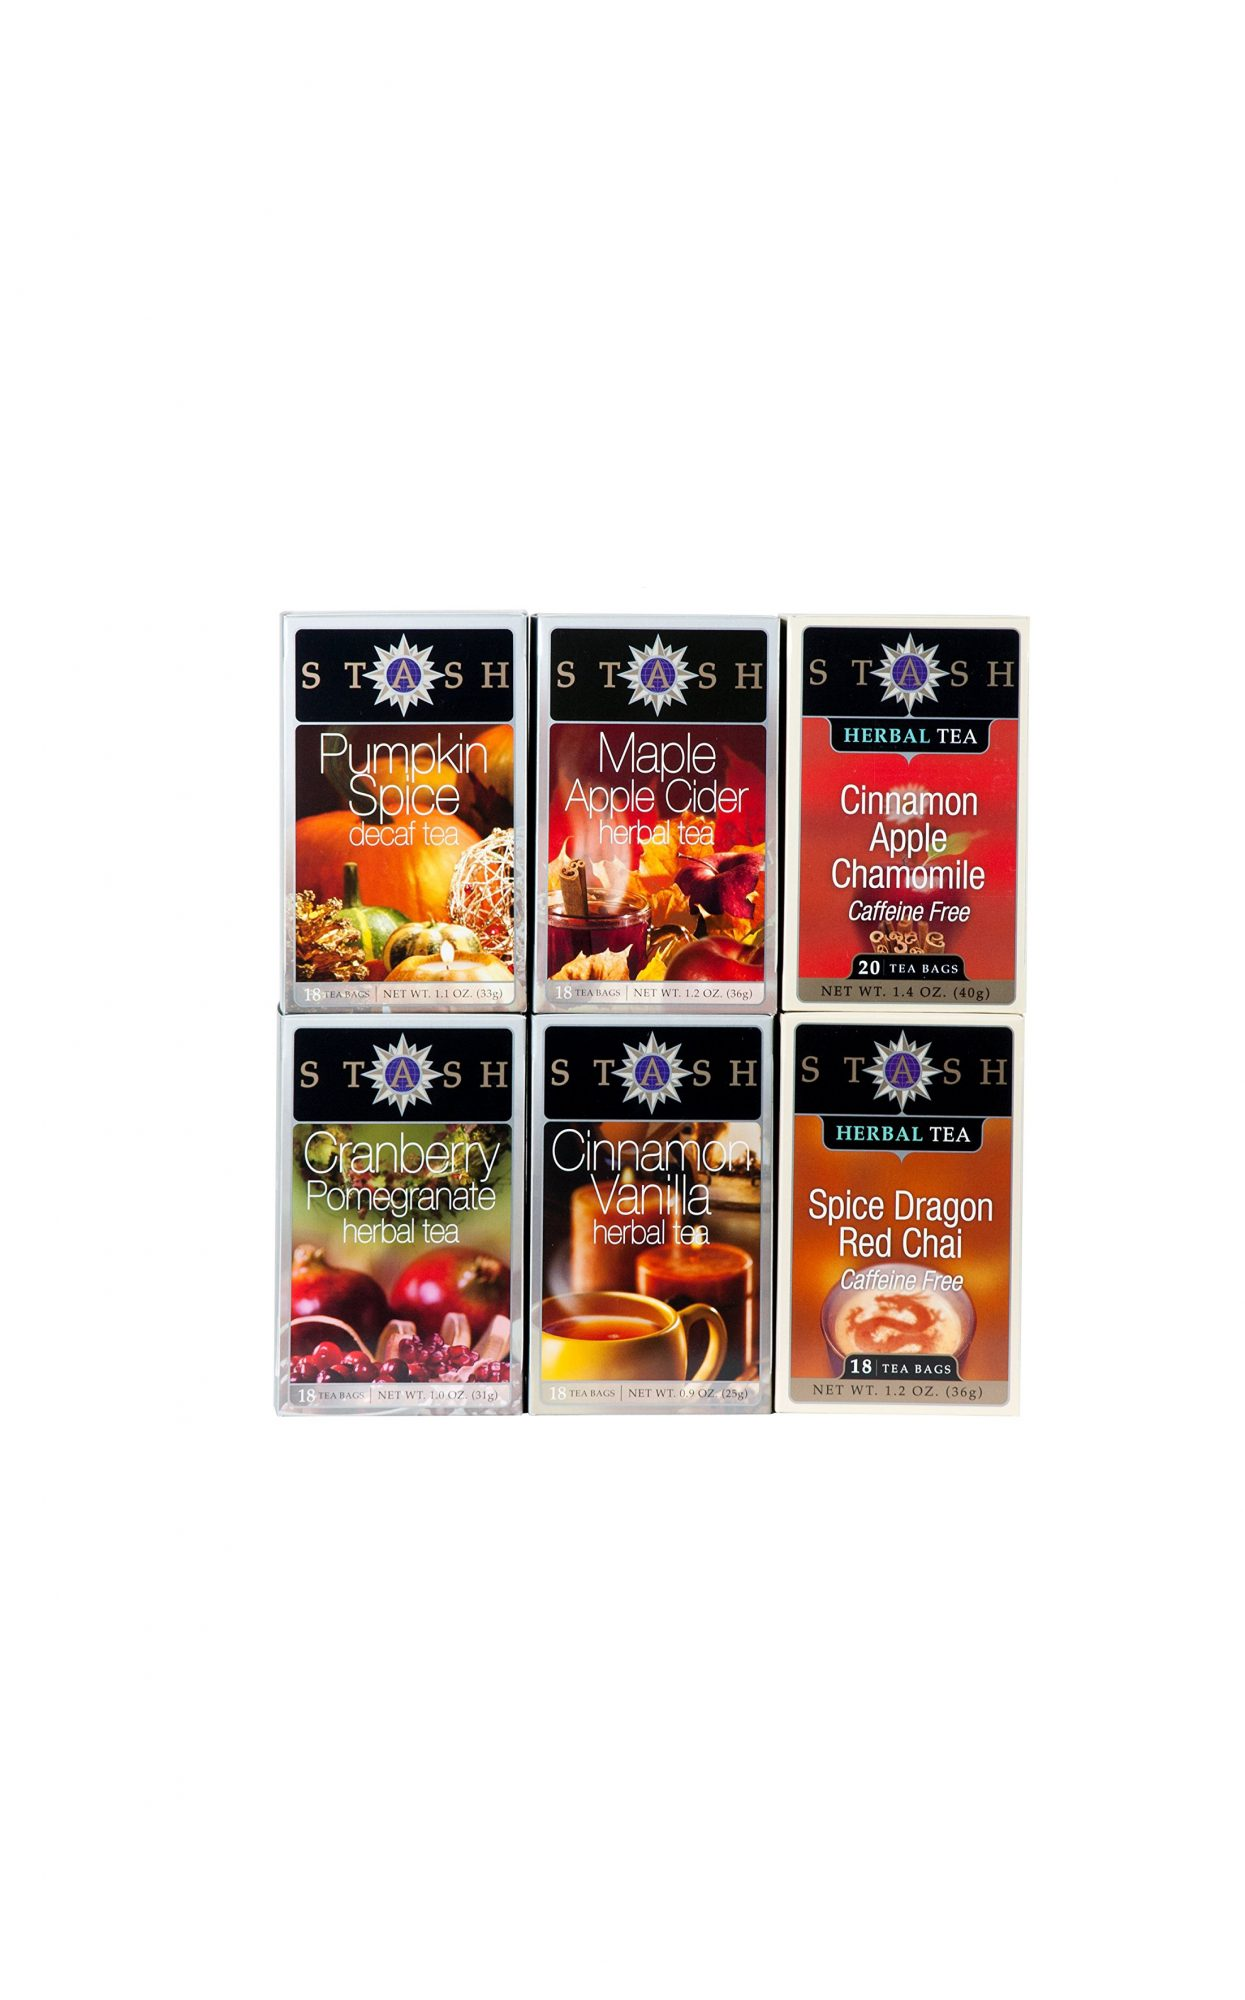 Stash Tea 6-Flavor Assortment for Fall